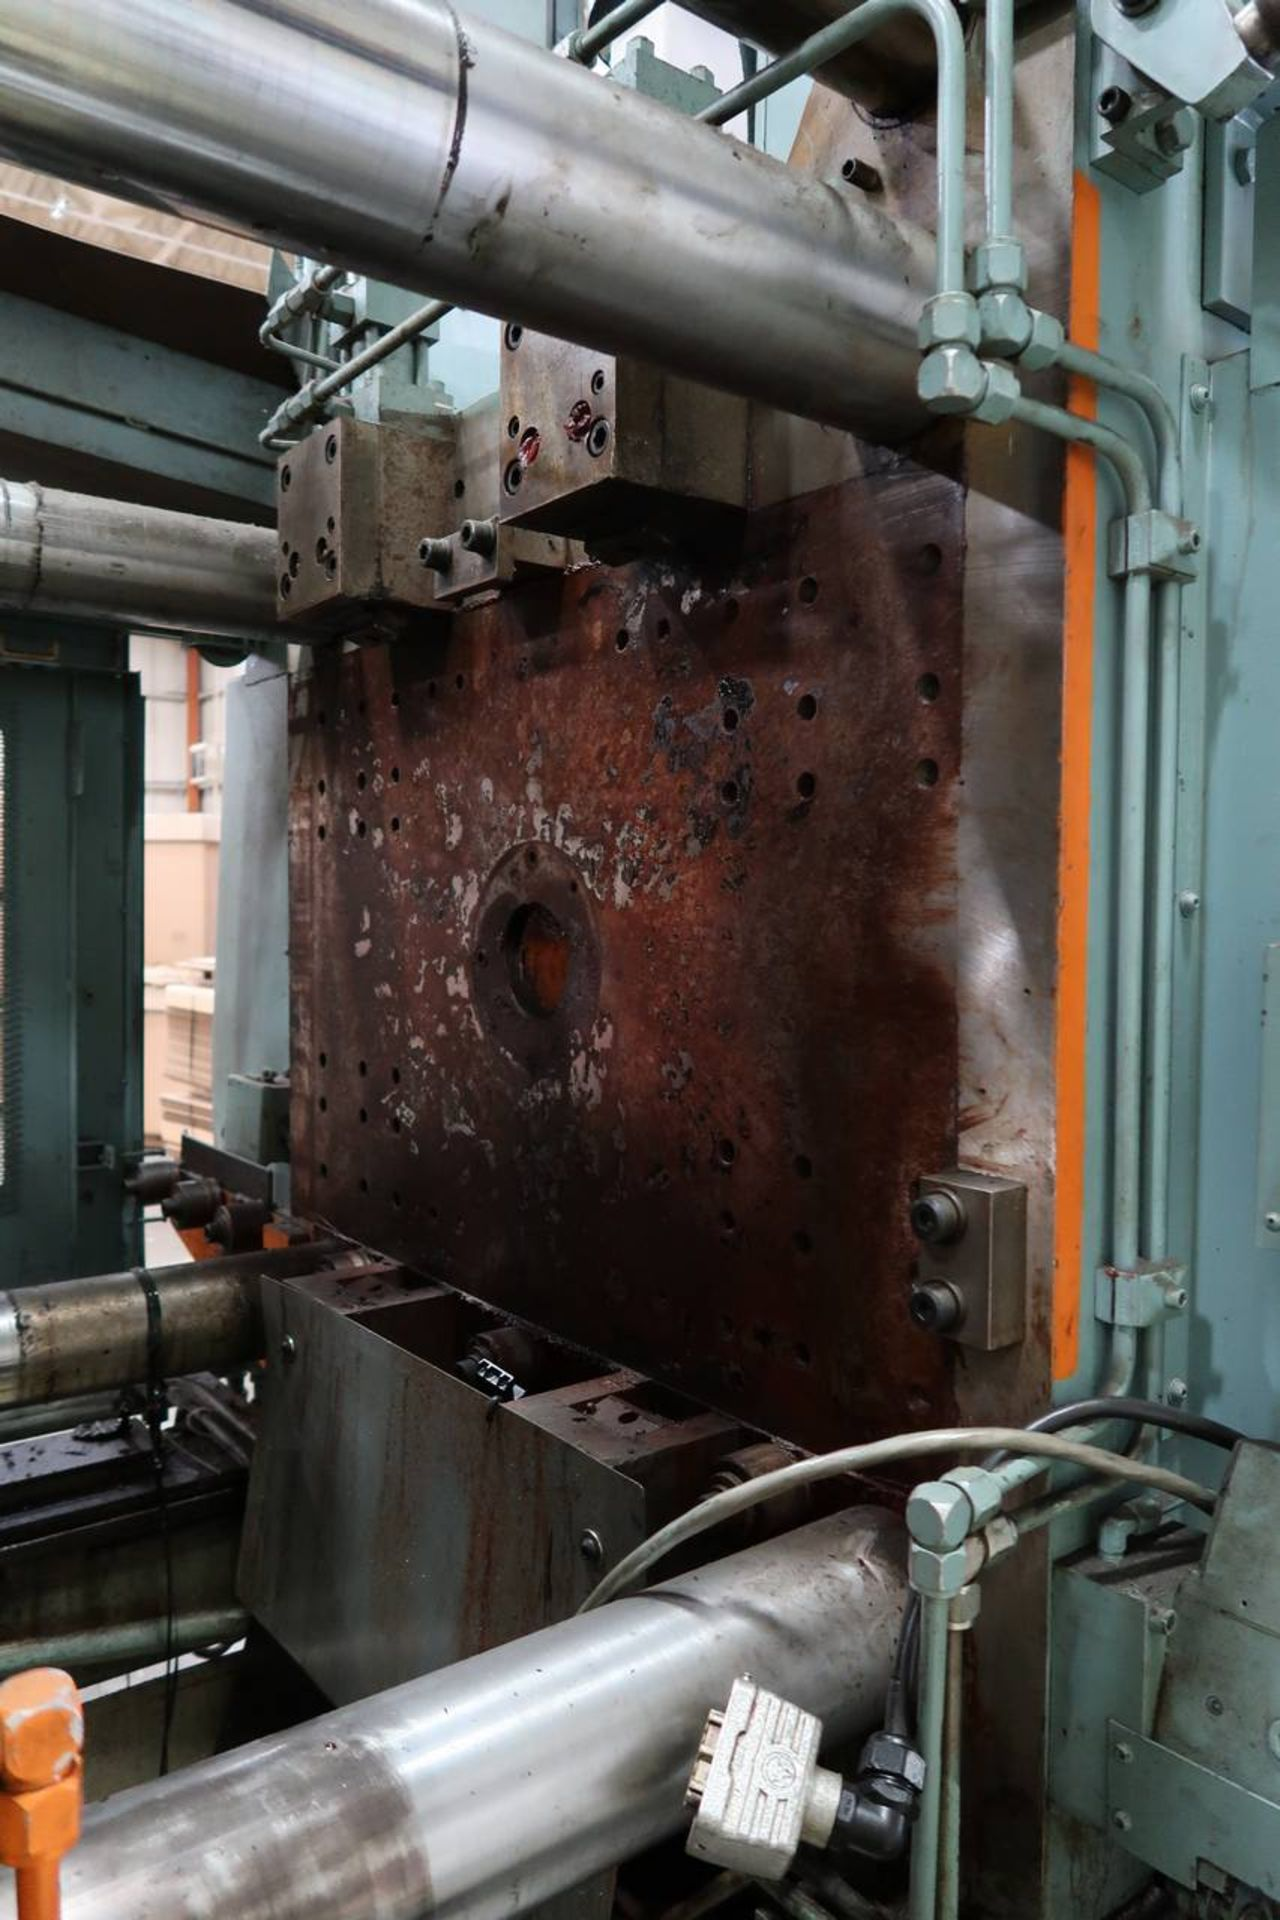 1986 HPM 400-TP-20 400-Ton Thermo Plastic Injection Molding Press - Image 9 of 40